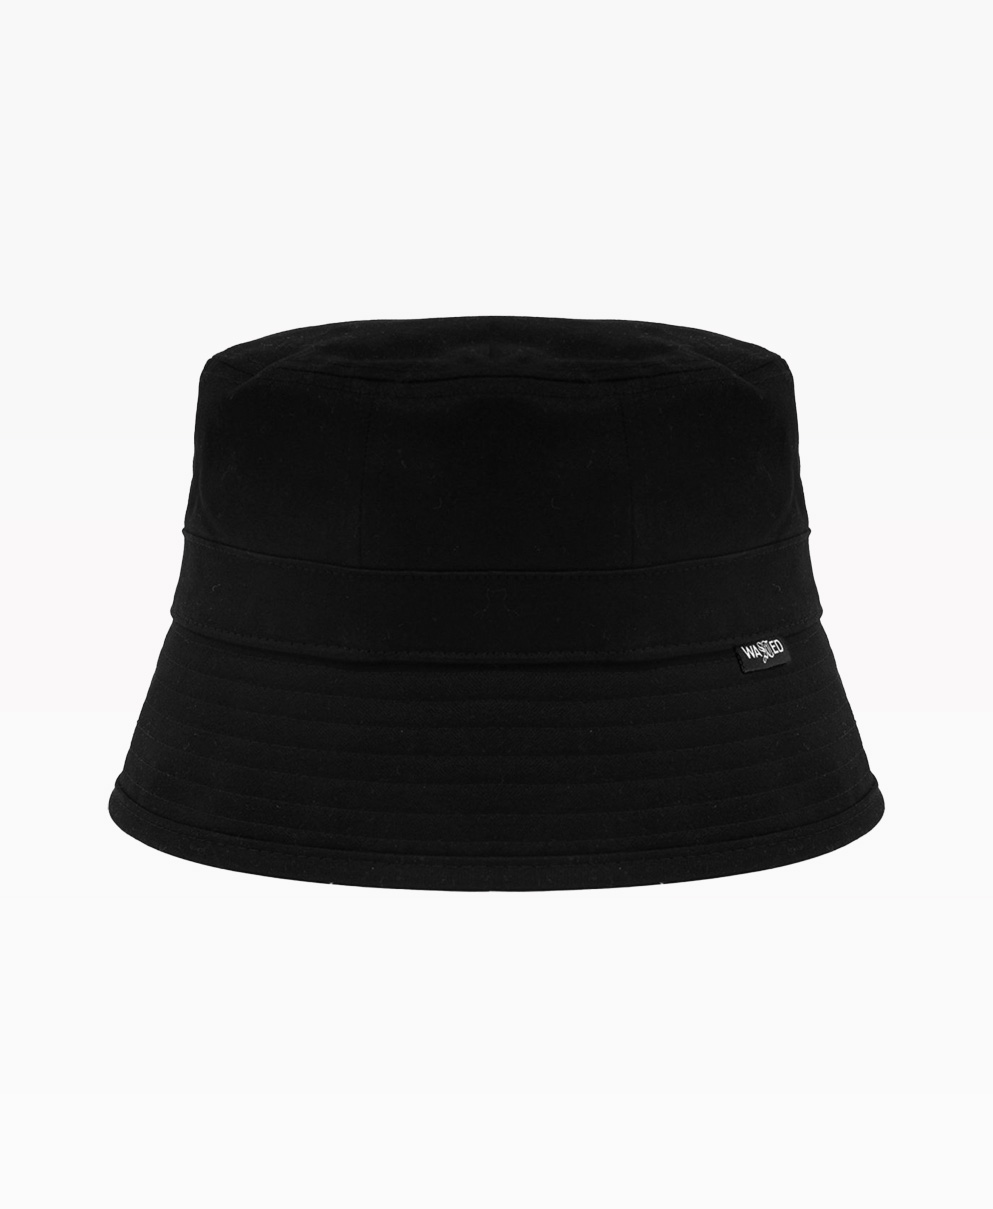 Wasted Bob Ss21 Black Front